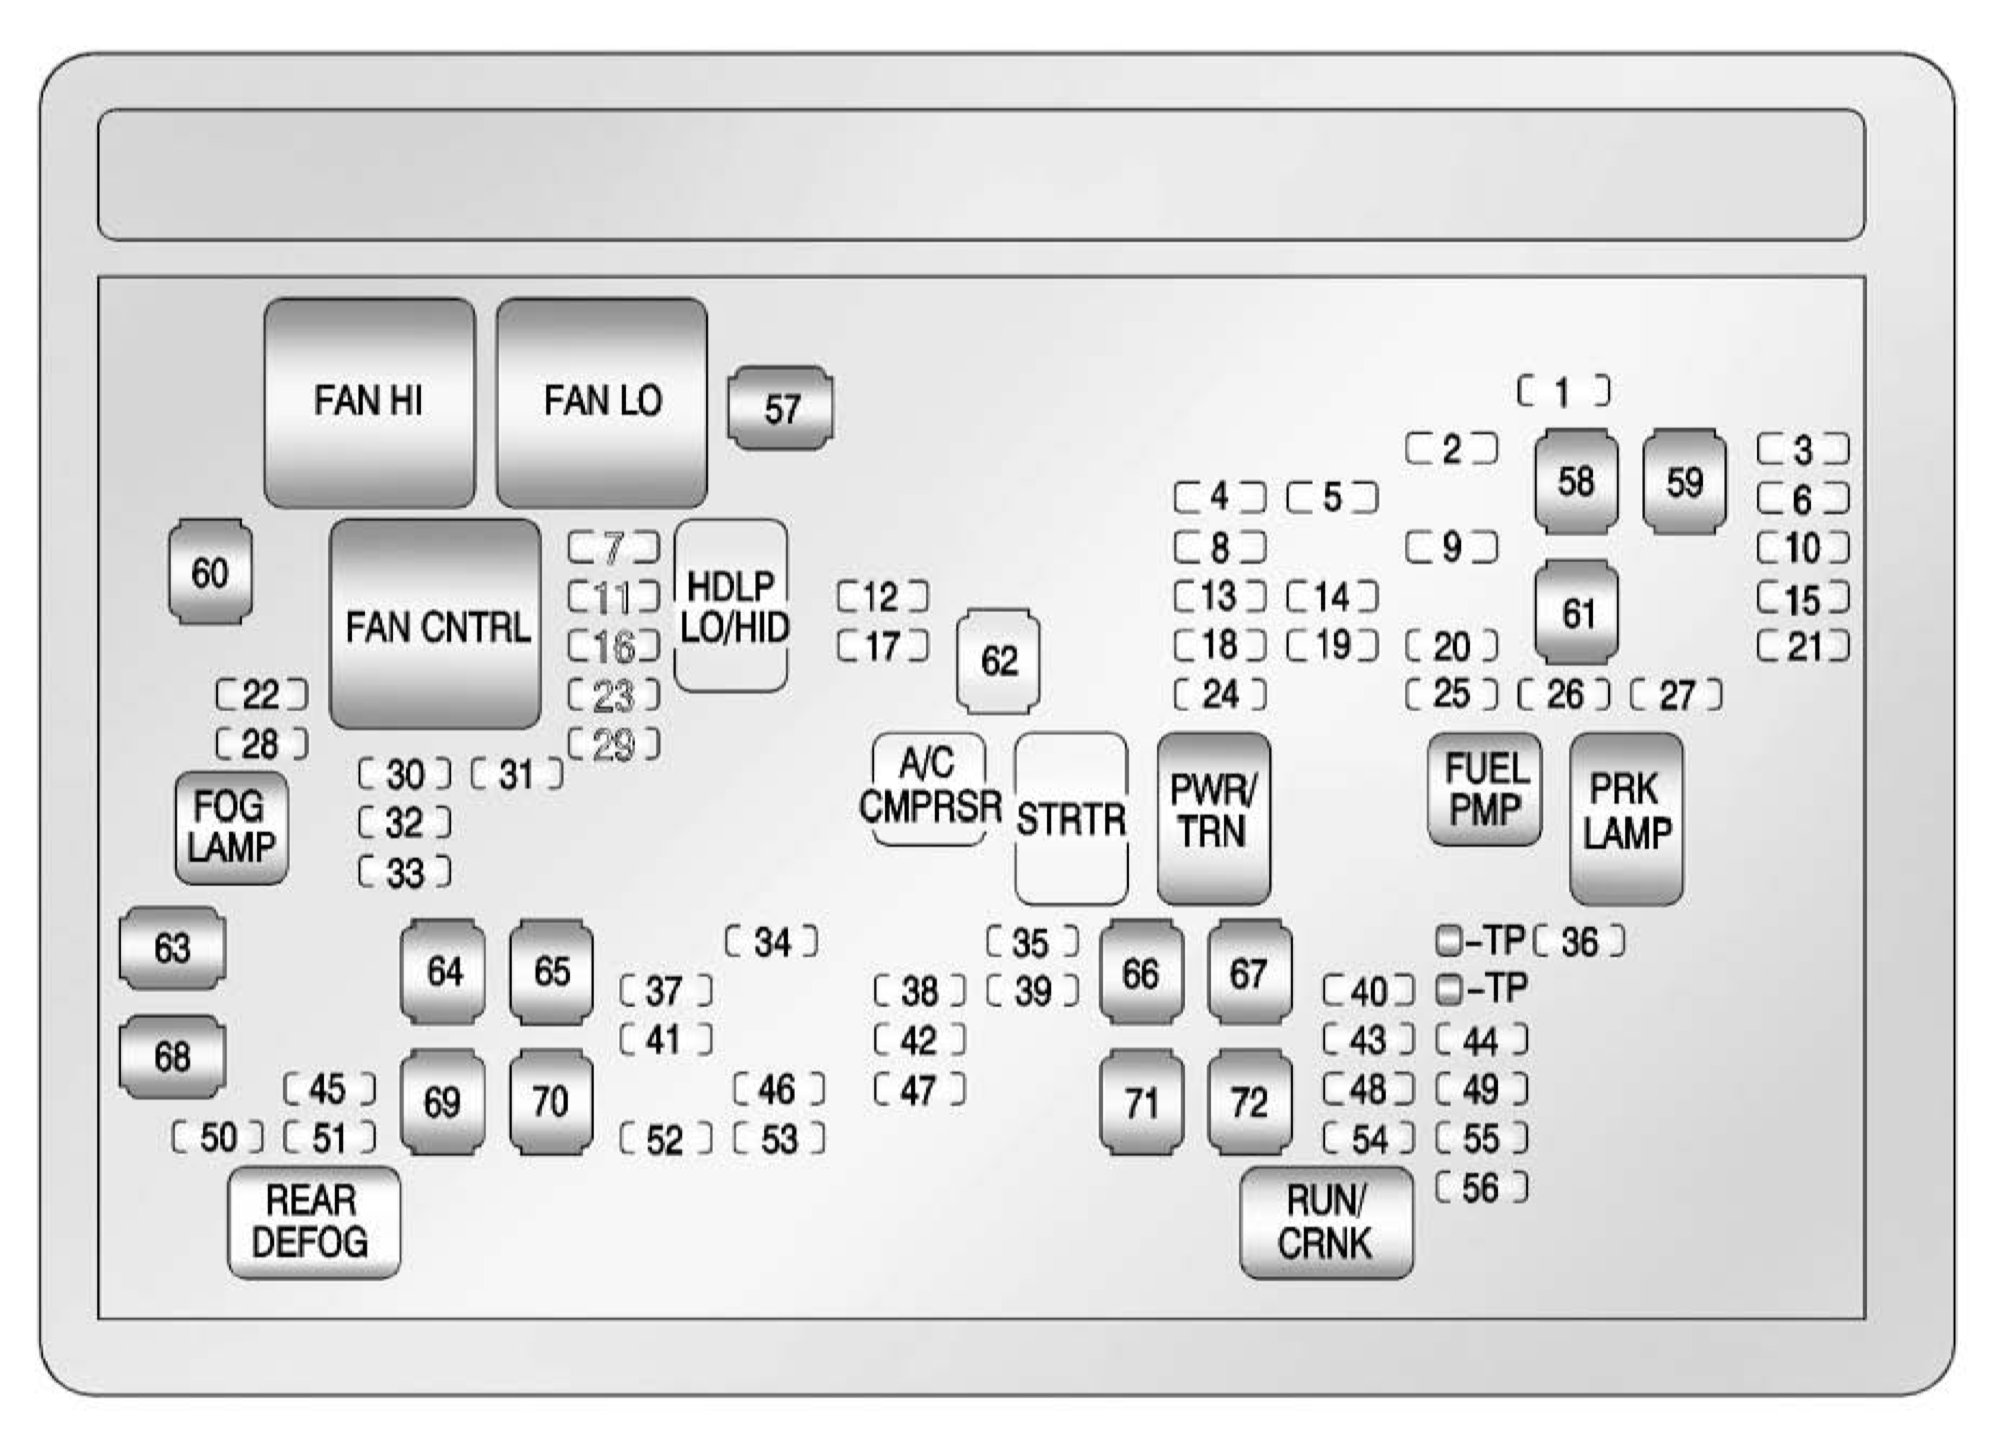 Chevrolet Suburban (2011 - 2014) - fuse box diagram - Auto Genius